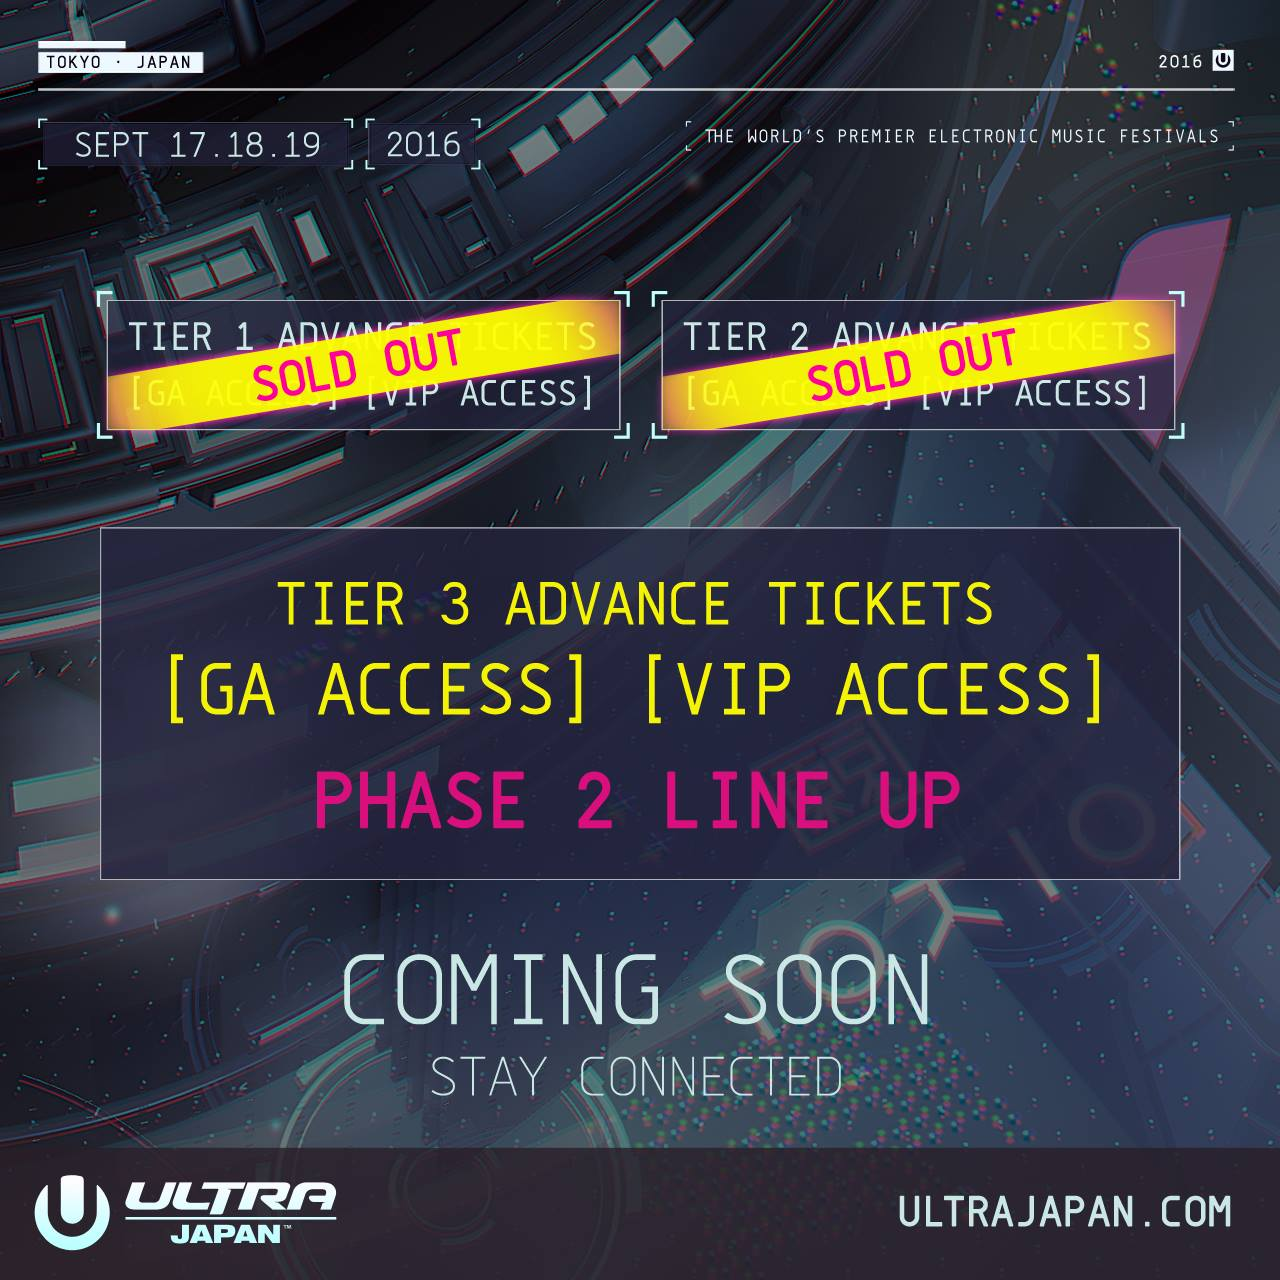 TIER 2 ADVANCE TICKETS COMPLETELY SOLD OUT!